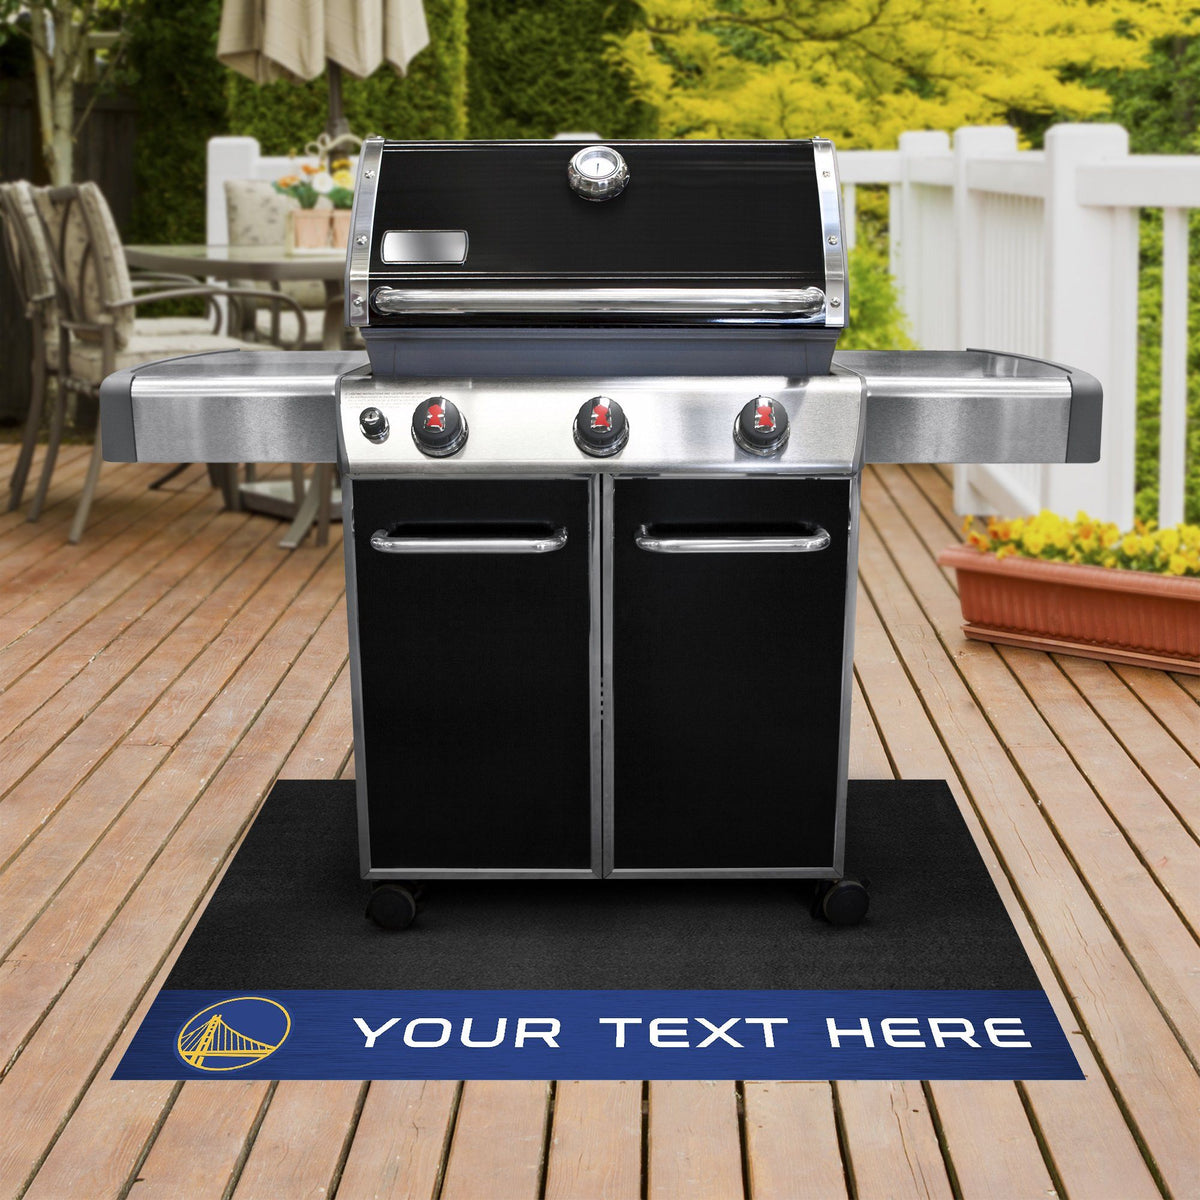 NBA Personalized Grill Mat Personalized Grill Mat Fan Mats Golden State Warriors